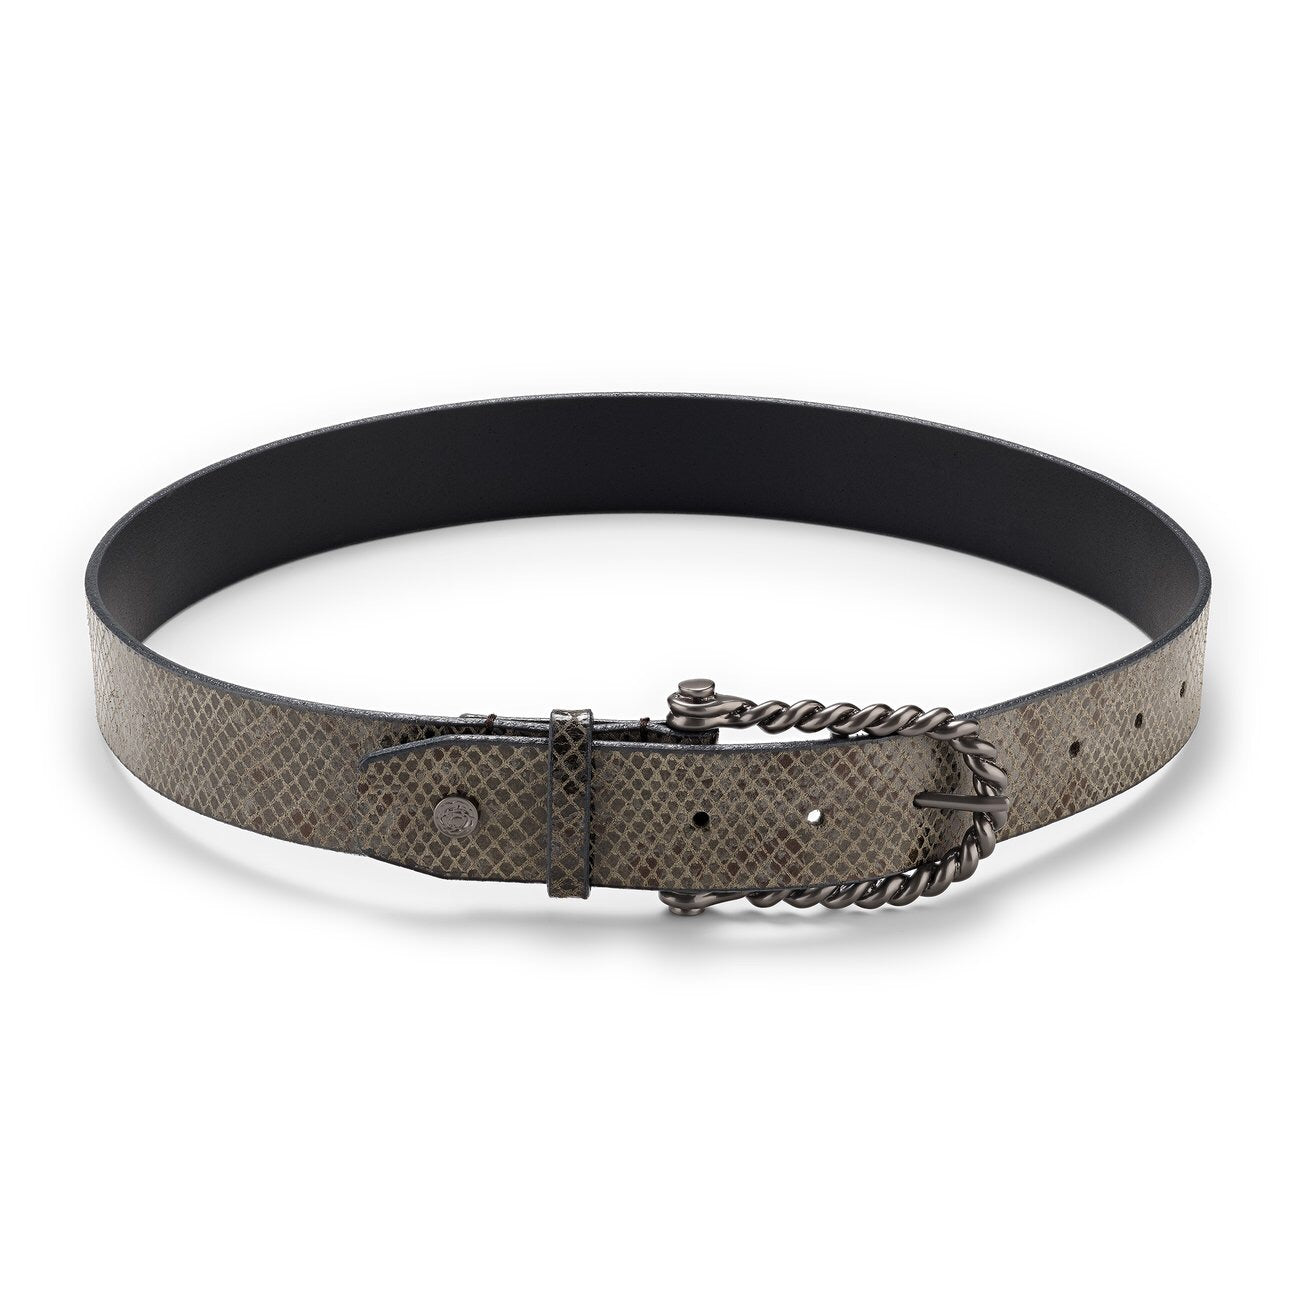 Hannah Childs Lifestyle Gunmetal Python Belt - Luxe EQ